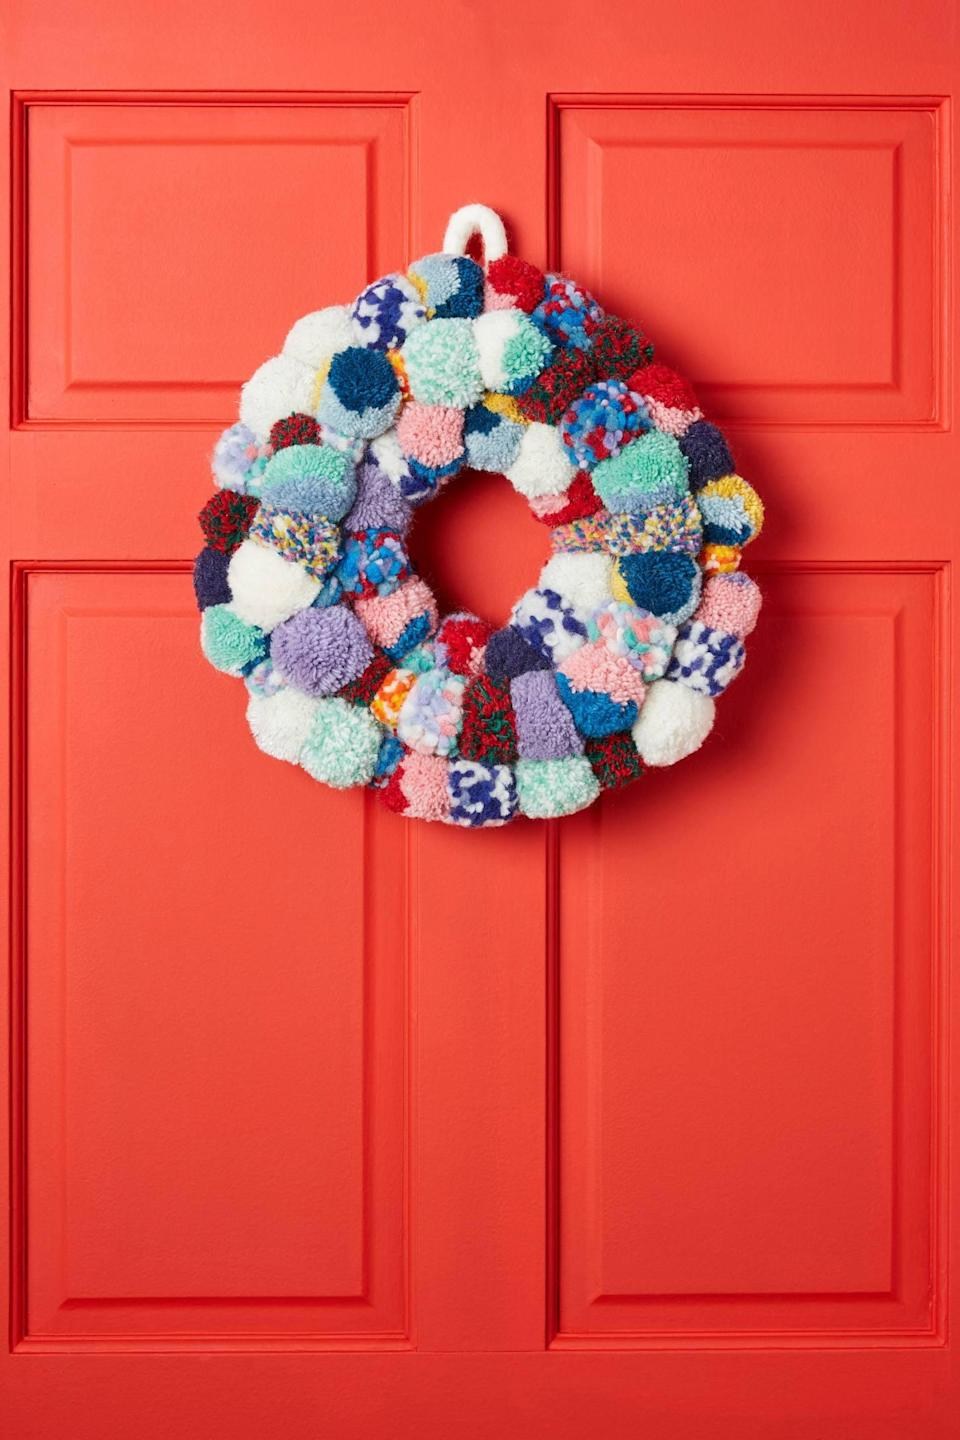 """<p>Hang a festive, squishy wreath on your front door with the <a href=""""https://www.popsugar.com/buy/Pom-Pom-Bonanza-Wreath-490452?p_name=Pom%20Pom%20Bonanza%20Wreath&retailer=anthropologie.com&pid=490452&price=118&evar1=casa%3Aus&evar9=46615300&evar98=https%3A%2F%2Fwww.popsugar.com%2Fhome%2Fphoto-gallery%2F46615300%2Fimage%2F46615322%2FPom-Pom-Bonanza-Wreath&list1=shopping%2Canthropologie%2Choliday%2Cchristmas%2Cchristmas%20decorations%2Choliday%20decor%2Chome%20shopping&prop13=mobile&pdata=1"""" rel=""""nofollow noopener"""" class=""""link rapid-noclick-resp"""" target=""""_blank"""" data-ylk=""""slk:Pom Pom Bonanza Wreath"""">Pom Pom Bonanza Wreath</a> ($118).</p>"""